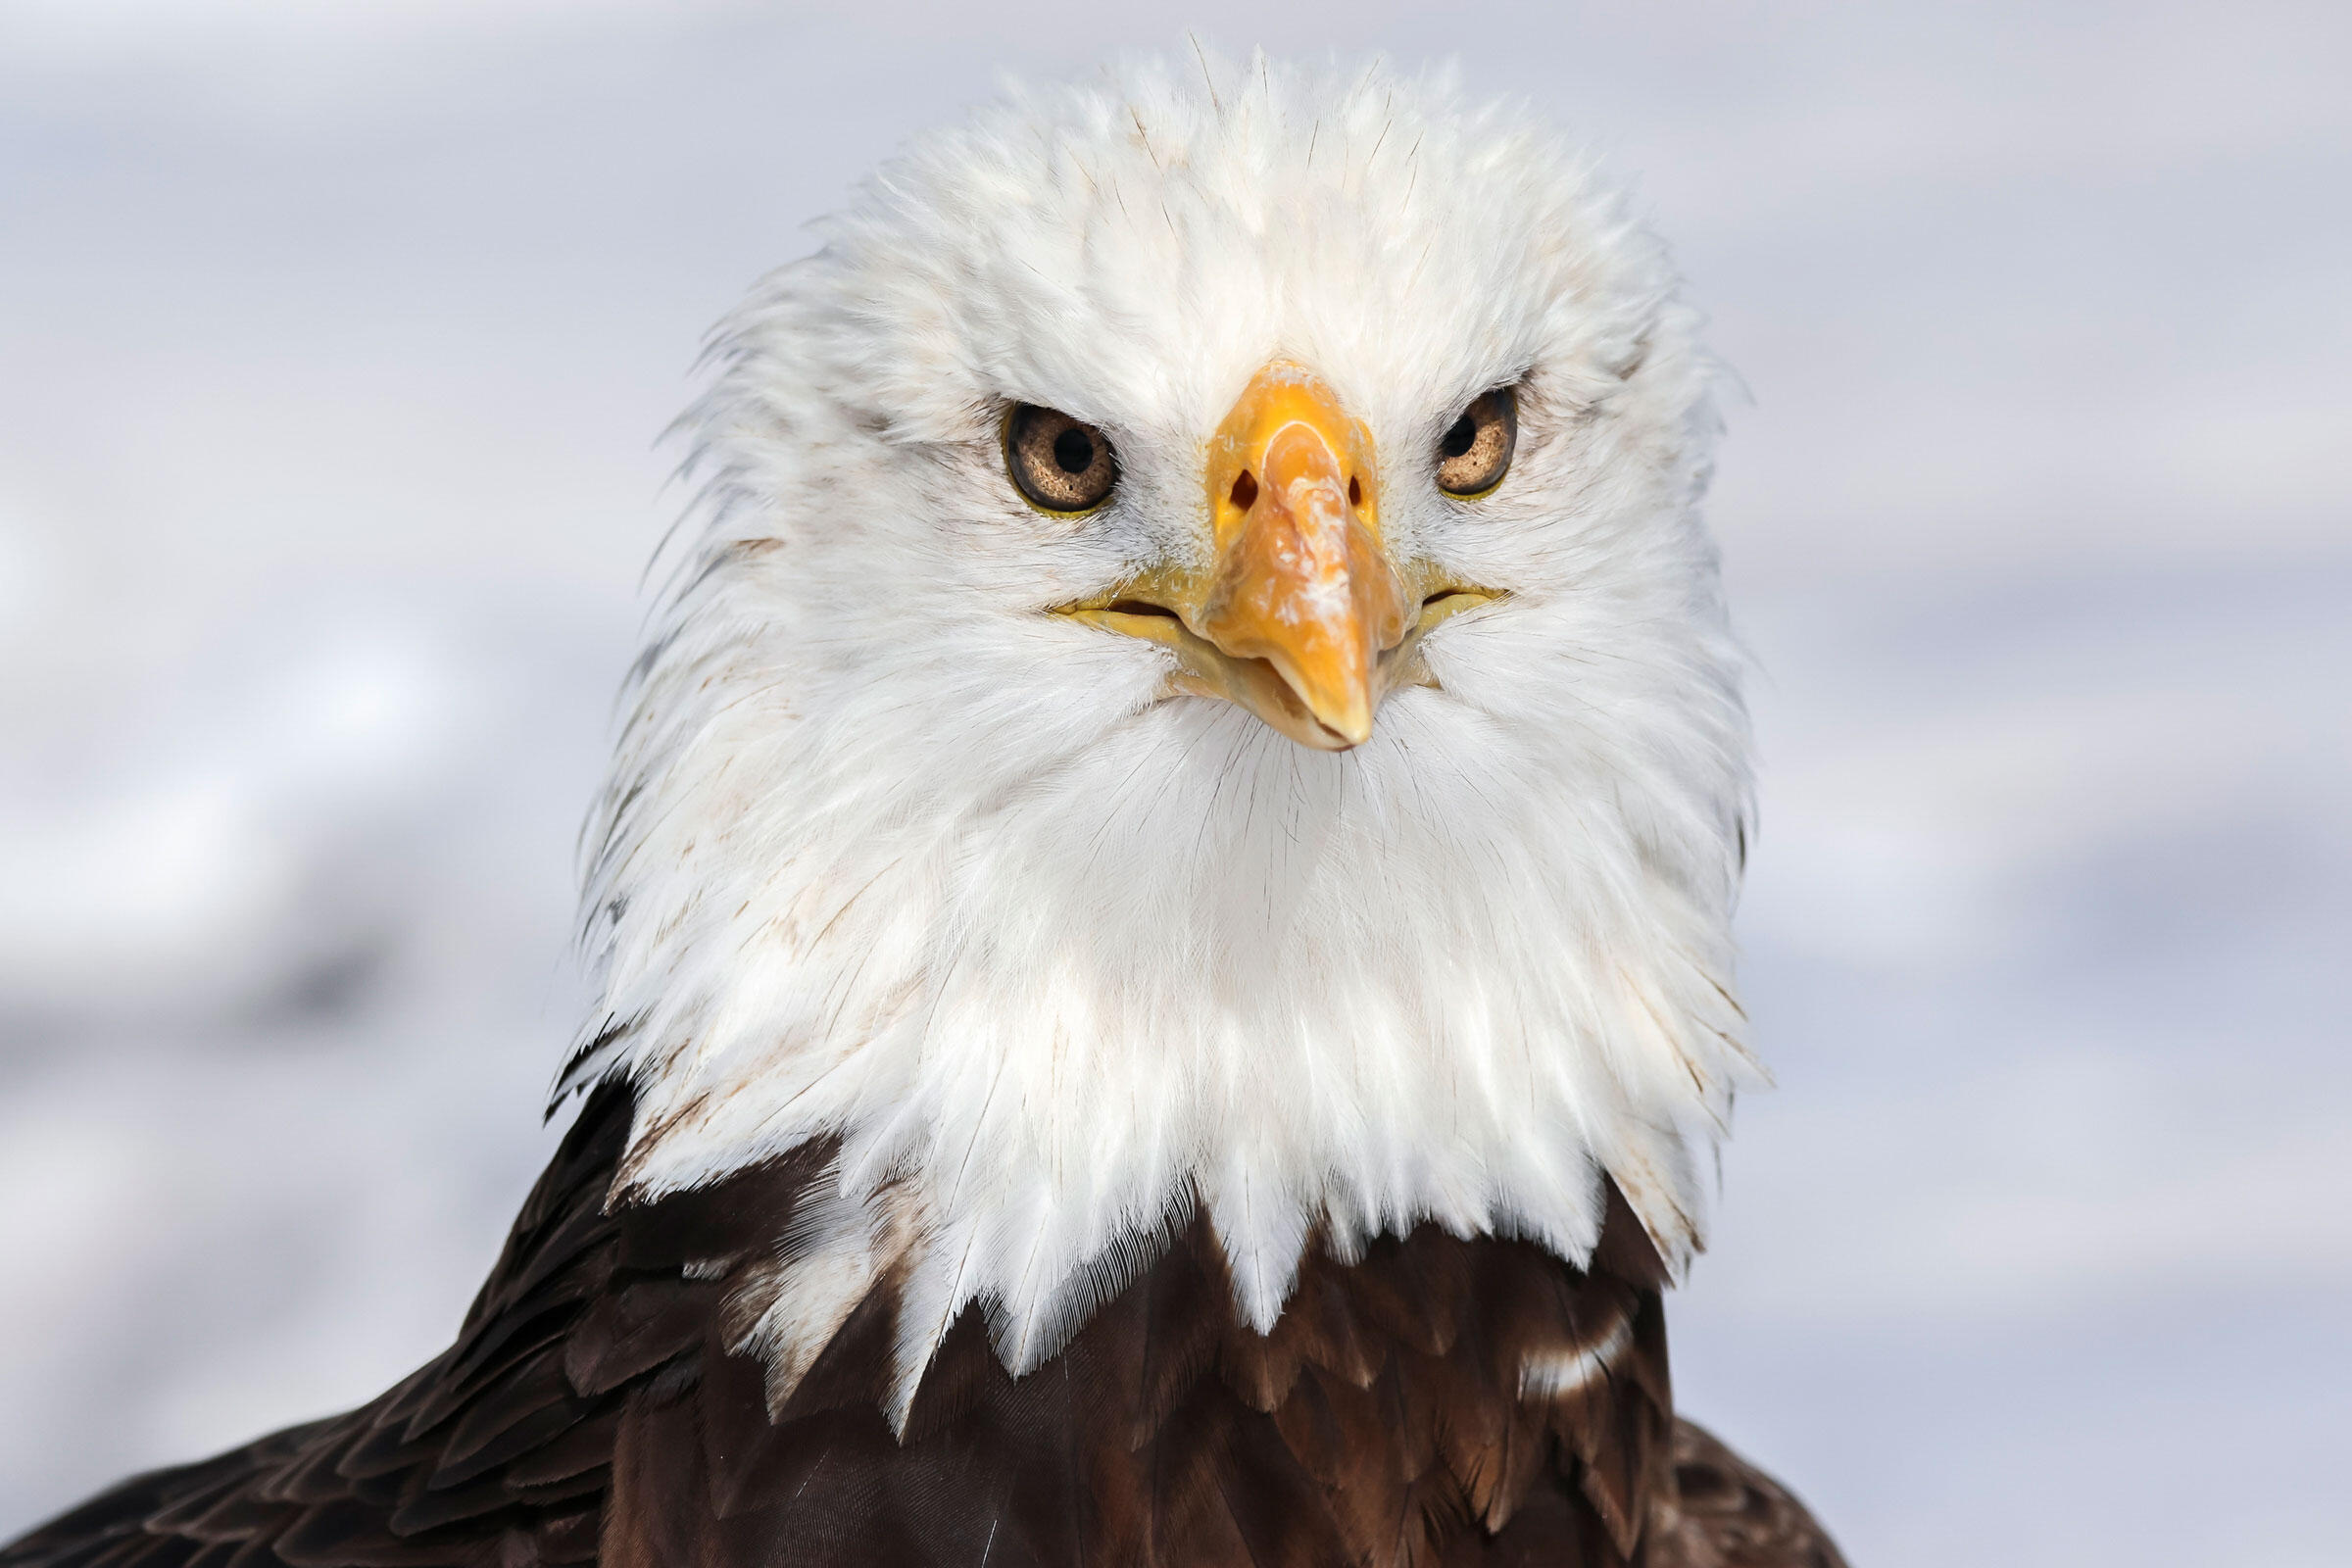 """Spirit, a 20-year-old Bald Eagle at the National Wind Technology Center. <a href=""""https://www.flickr.com/photos/nrel/24704561619/in/album-72157664341321922/"""">Lee Jay Fingersh/NREL</a>/Flickr CC (BY-NC-ND 2.0)"""